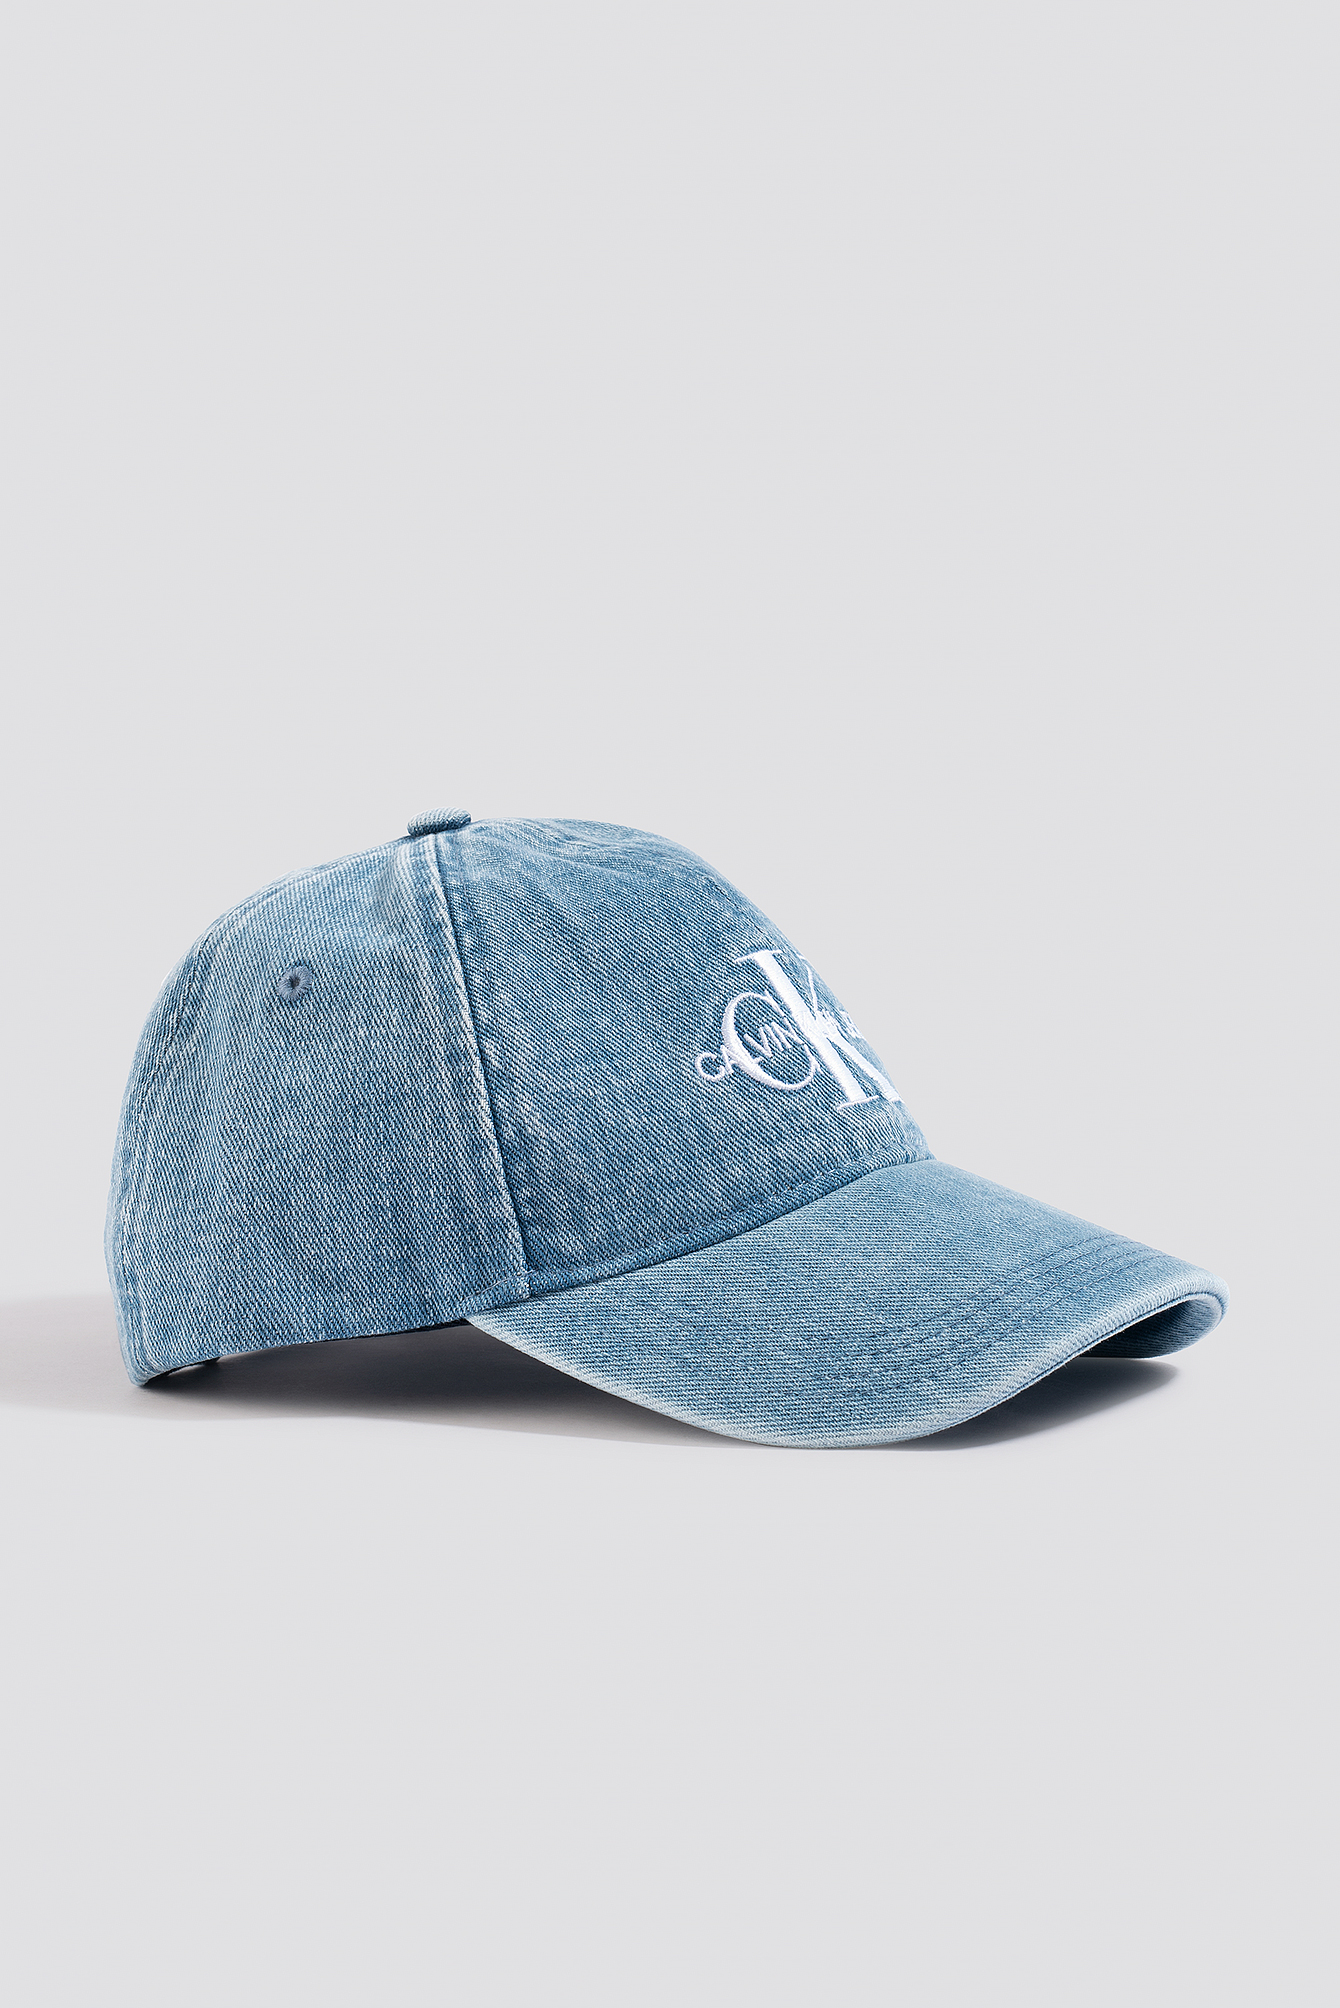 Light Wash J Monogram Denim Cap